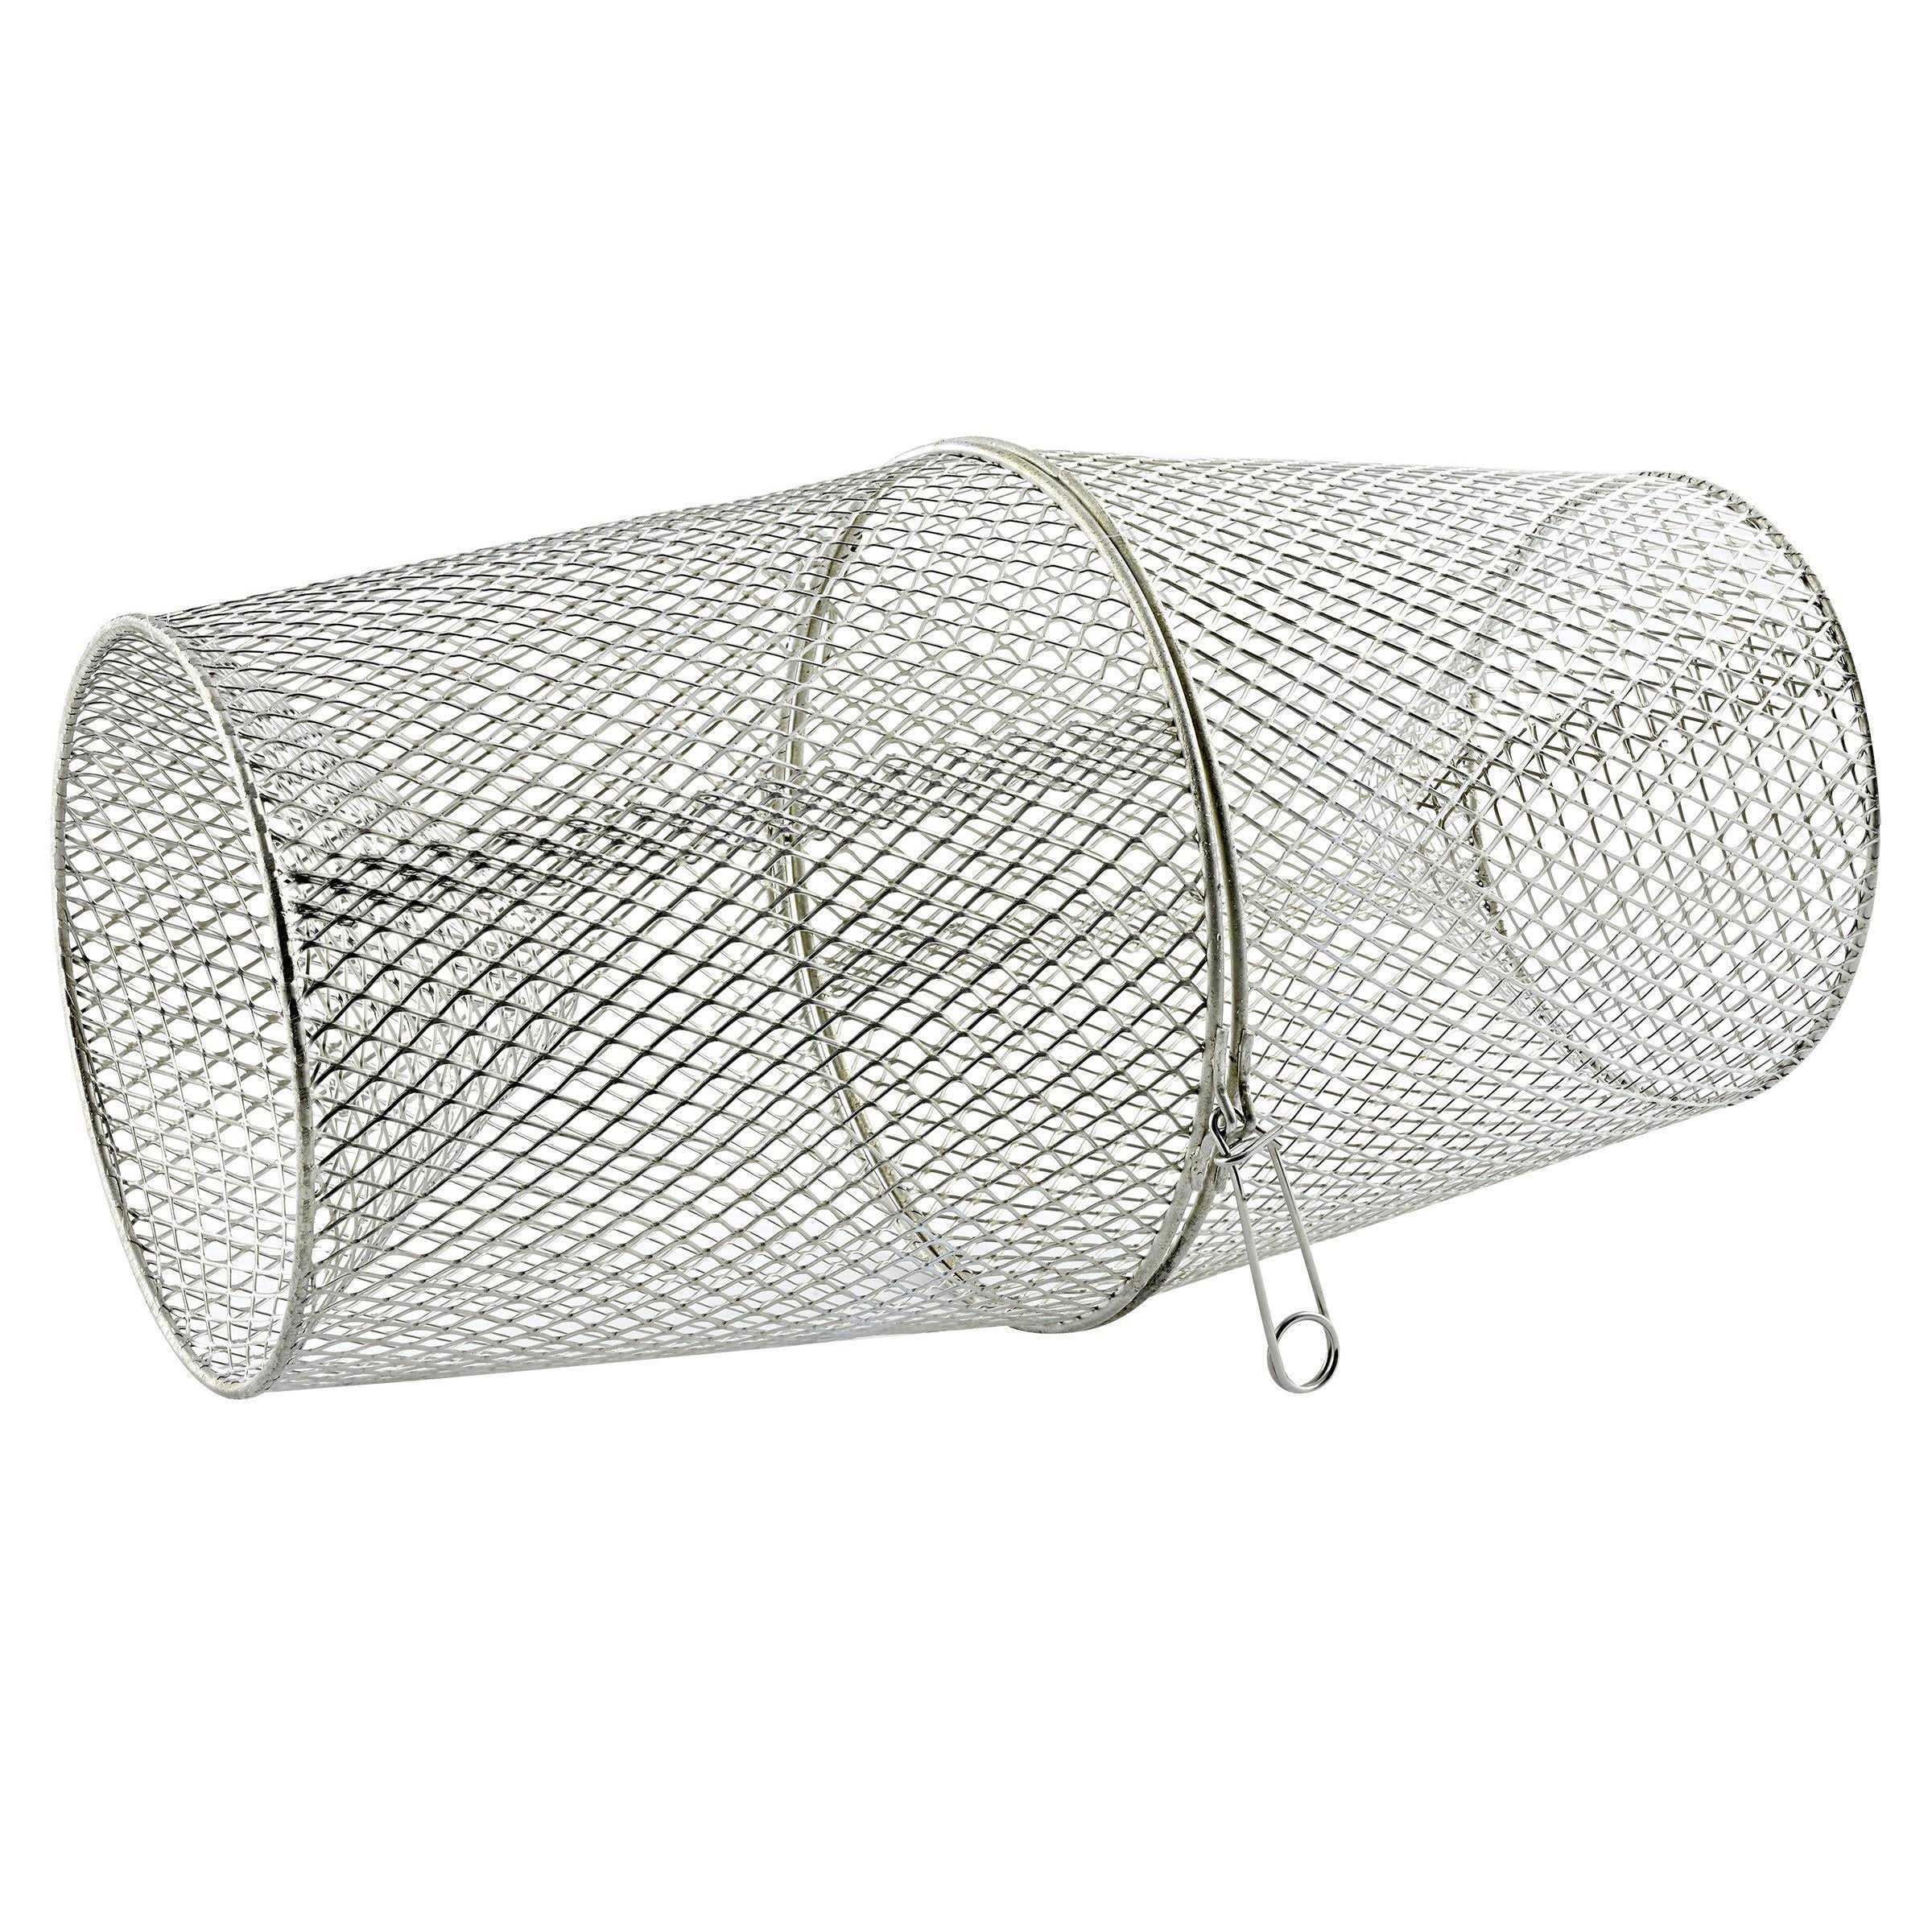 South Bend 110850 Wire Minnow Fishing Trap - 23cm x 42cm